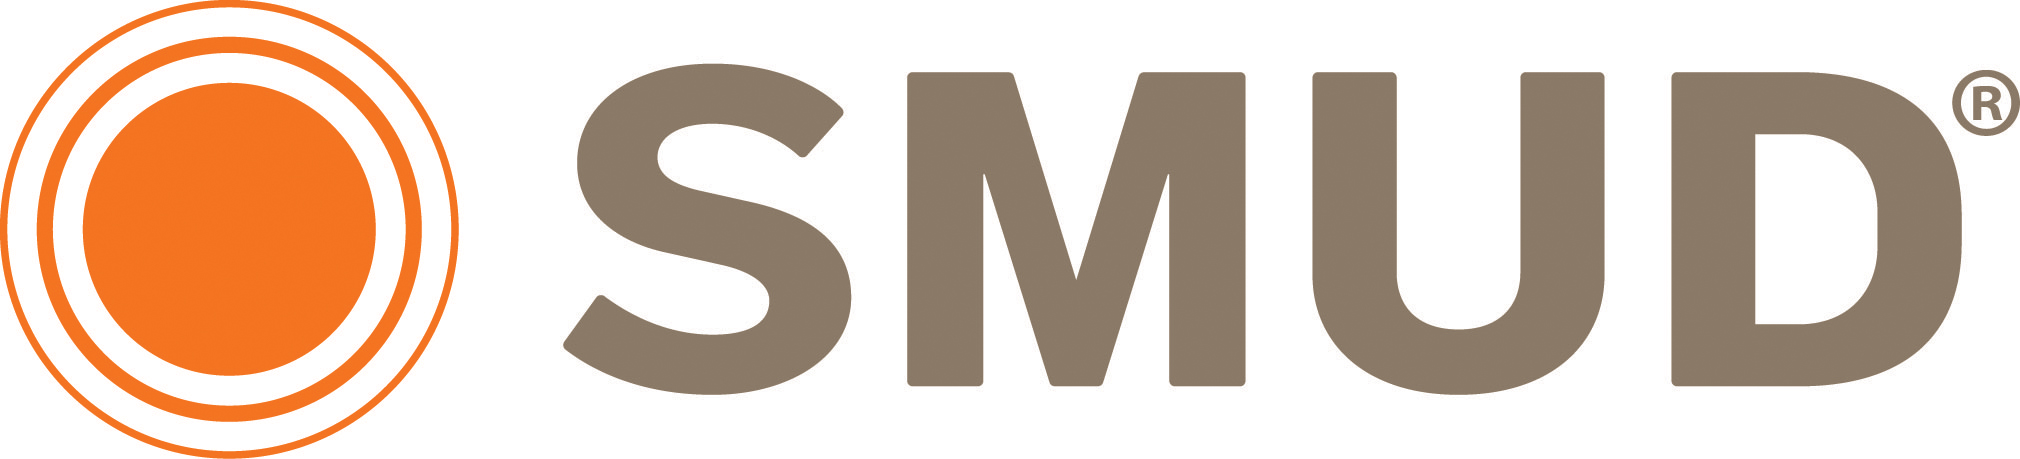 SMUD 4-color logo_large (JPEG).jpg